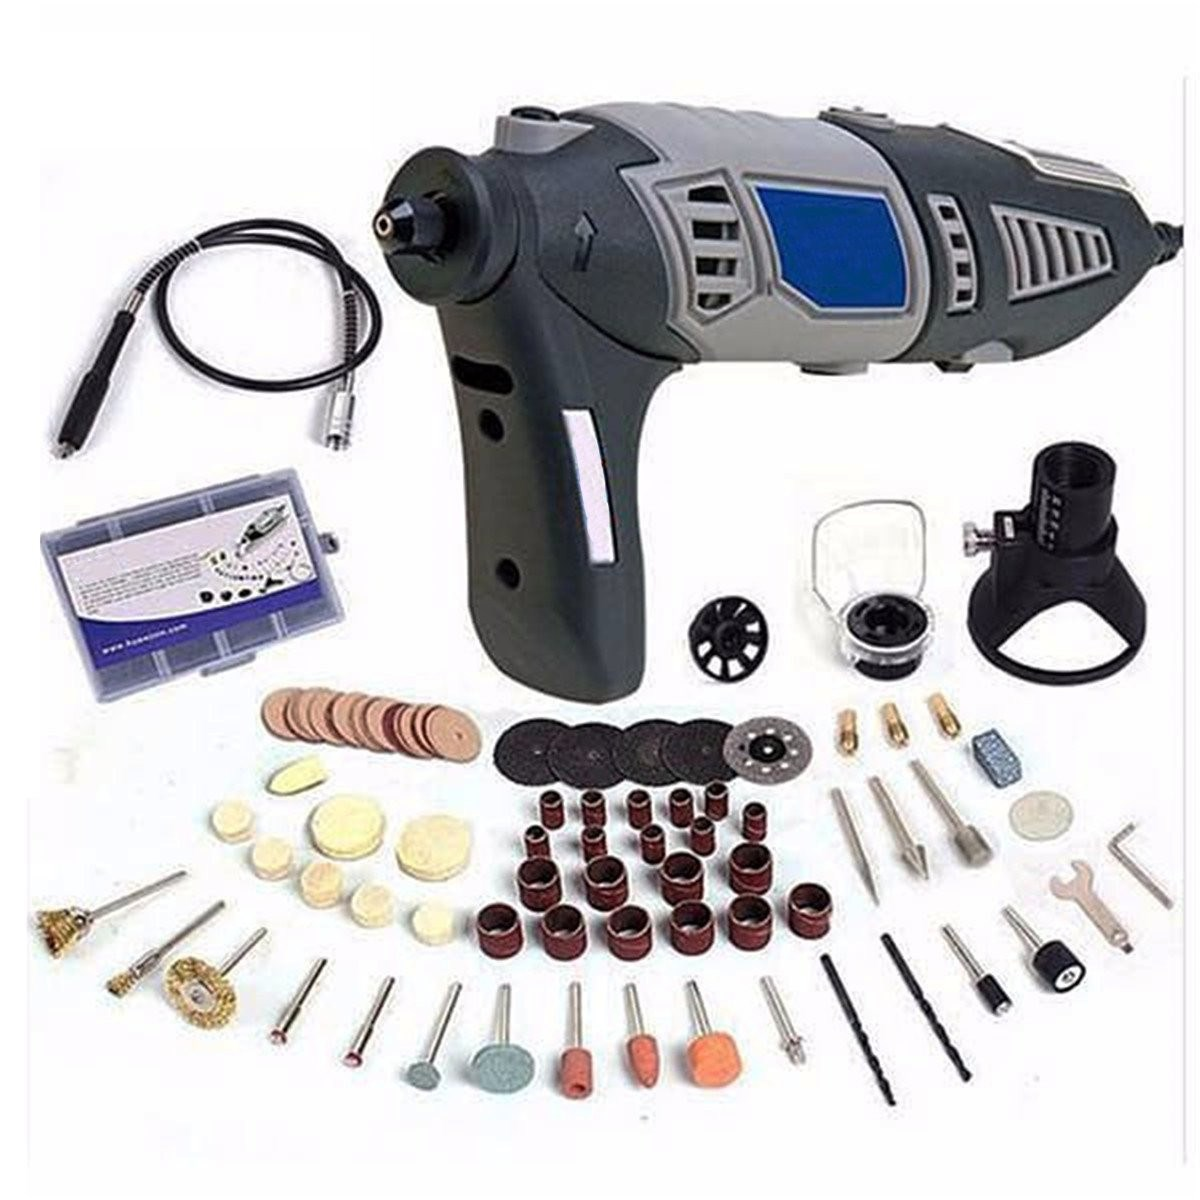 купить 220V 170W Variable Rotary Tool Electric Drill with Flexible Shaft and 91pcs Accessories Mini Grinder Power Tools по цене 2915.73 рублей